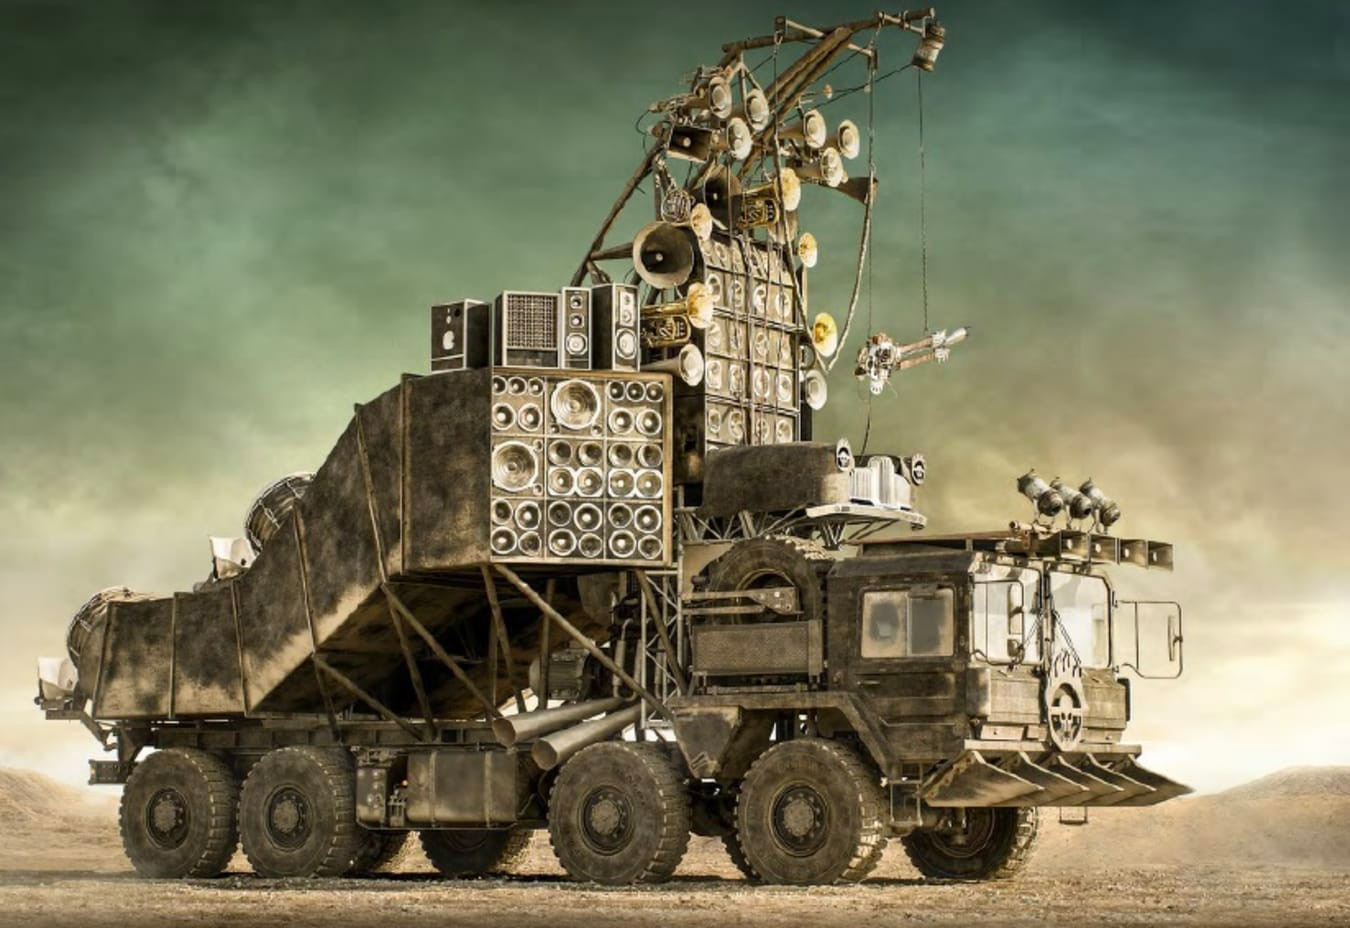 <i>Mad Max: Fury Road</i> Rigs Go Up for Auction at werd.com